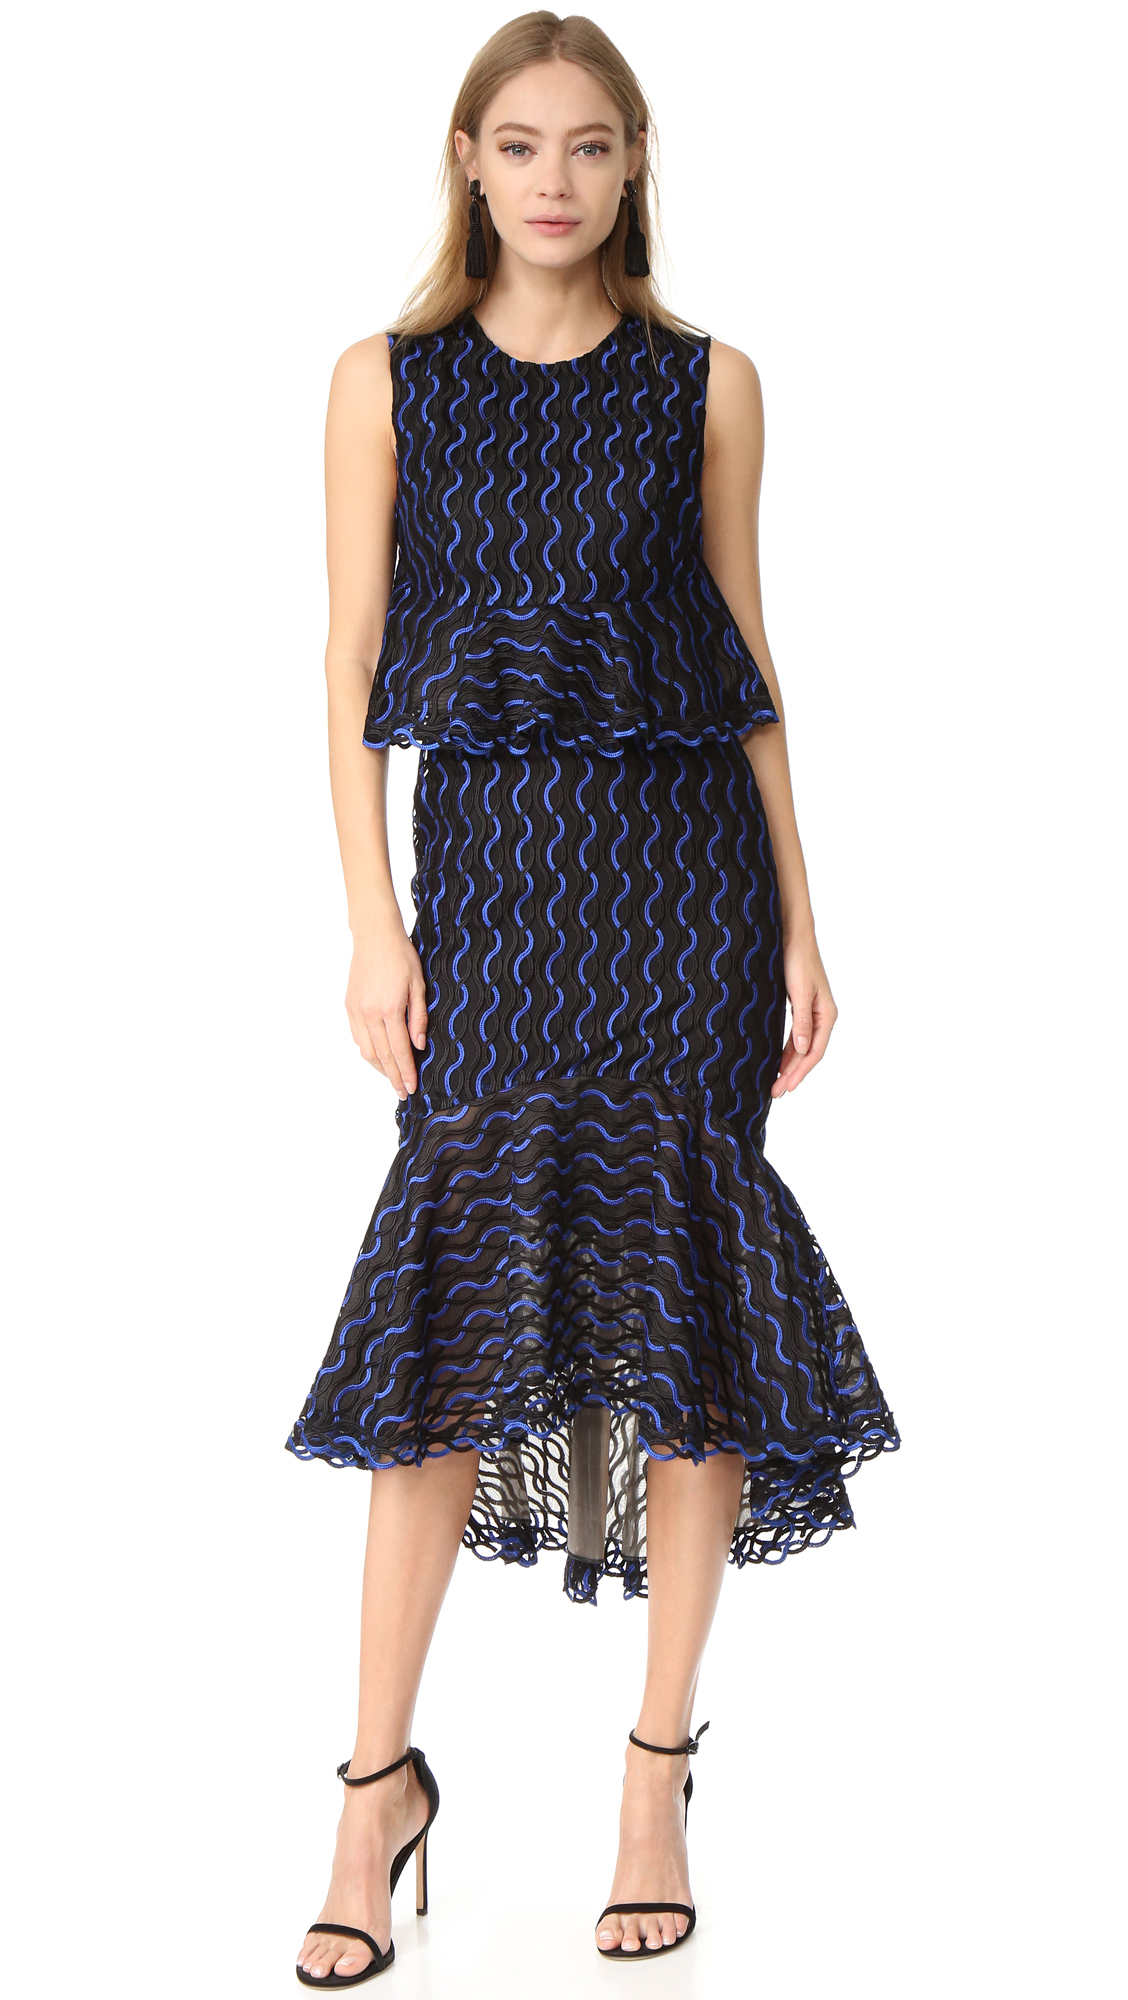 Lela Rose Ruffle Skirt Dress - Lapis/Black